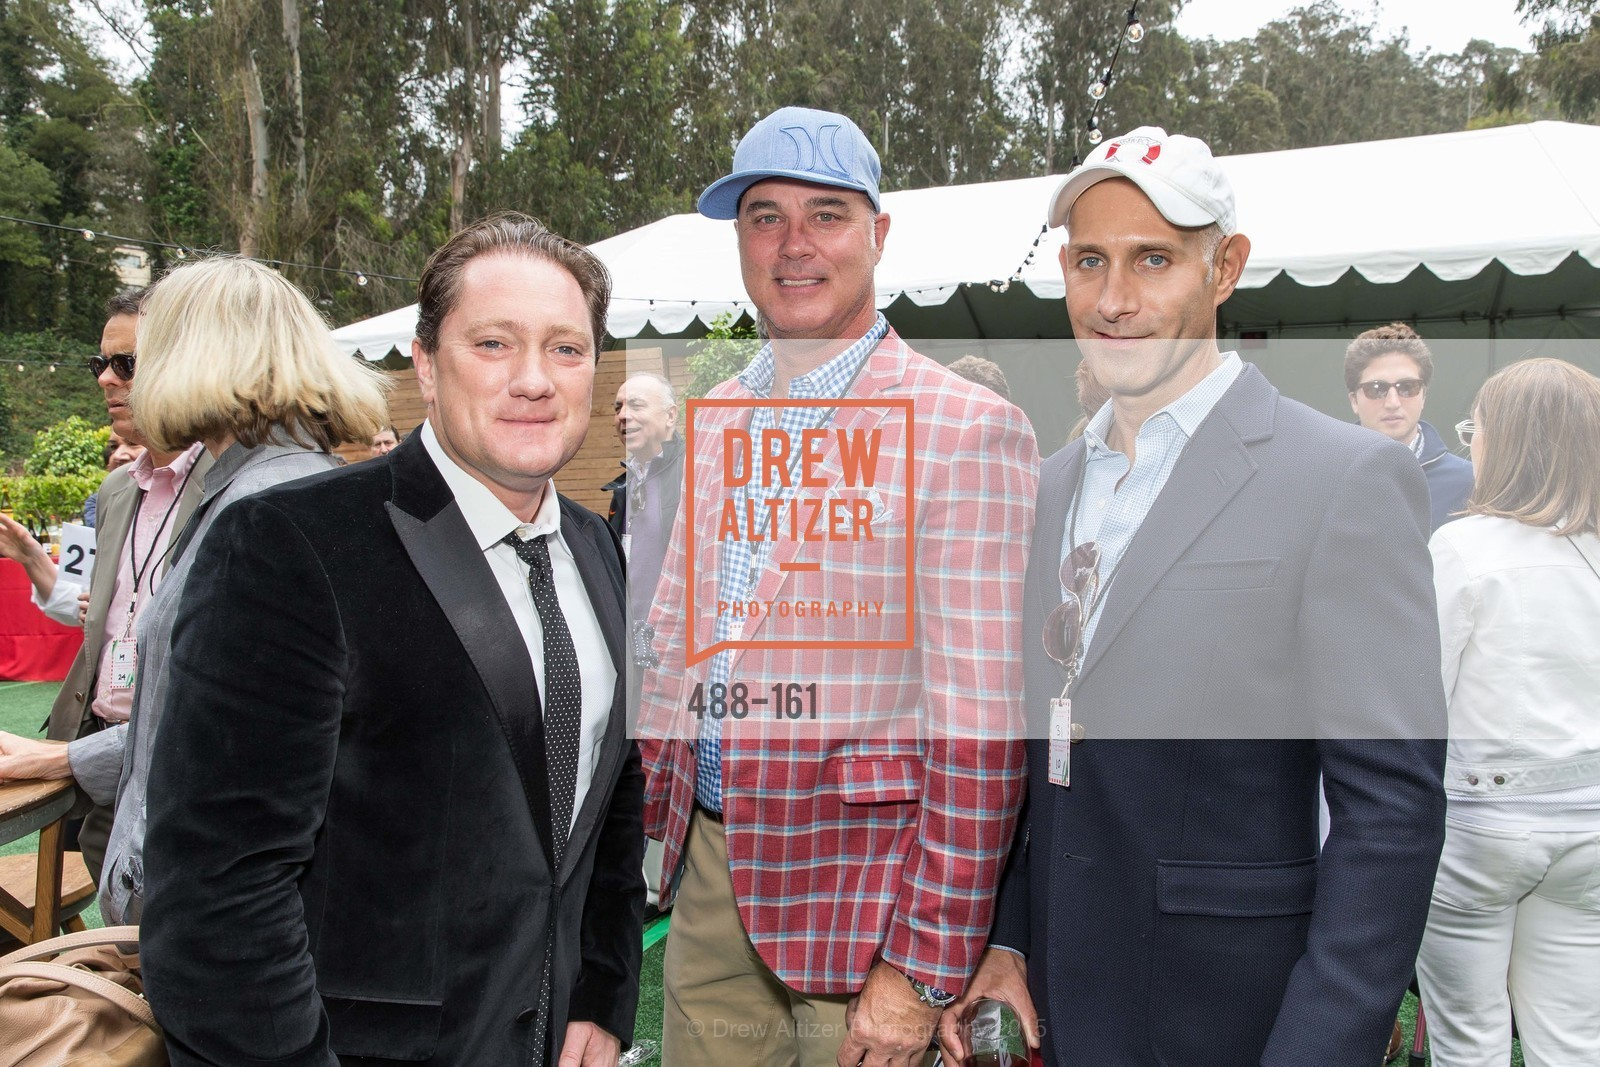 Liam Mayclem, Robert Foutain, Lino Cortina, THE BIG PICNIC Kicking off  2015 Stern Grove Season, Stern Grove. 2750 19th Avenue, June 14th, 2015,Drew Altizer, Drew Altizer Photography, full-service agency, private events, San Francisco photographer, photographer california